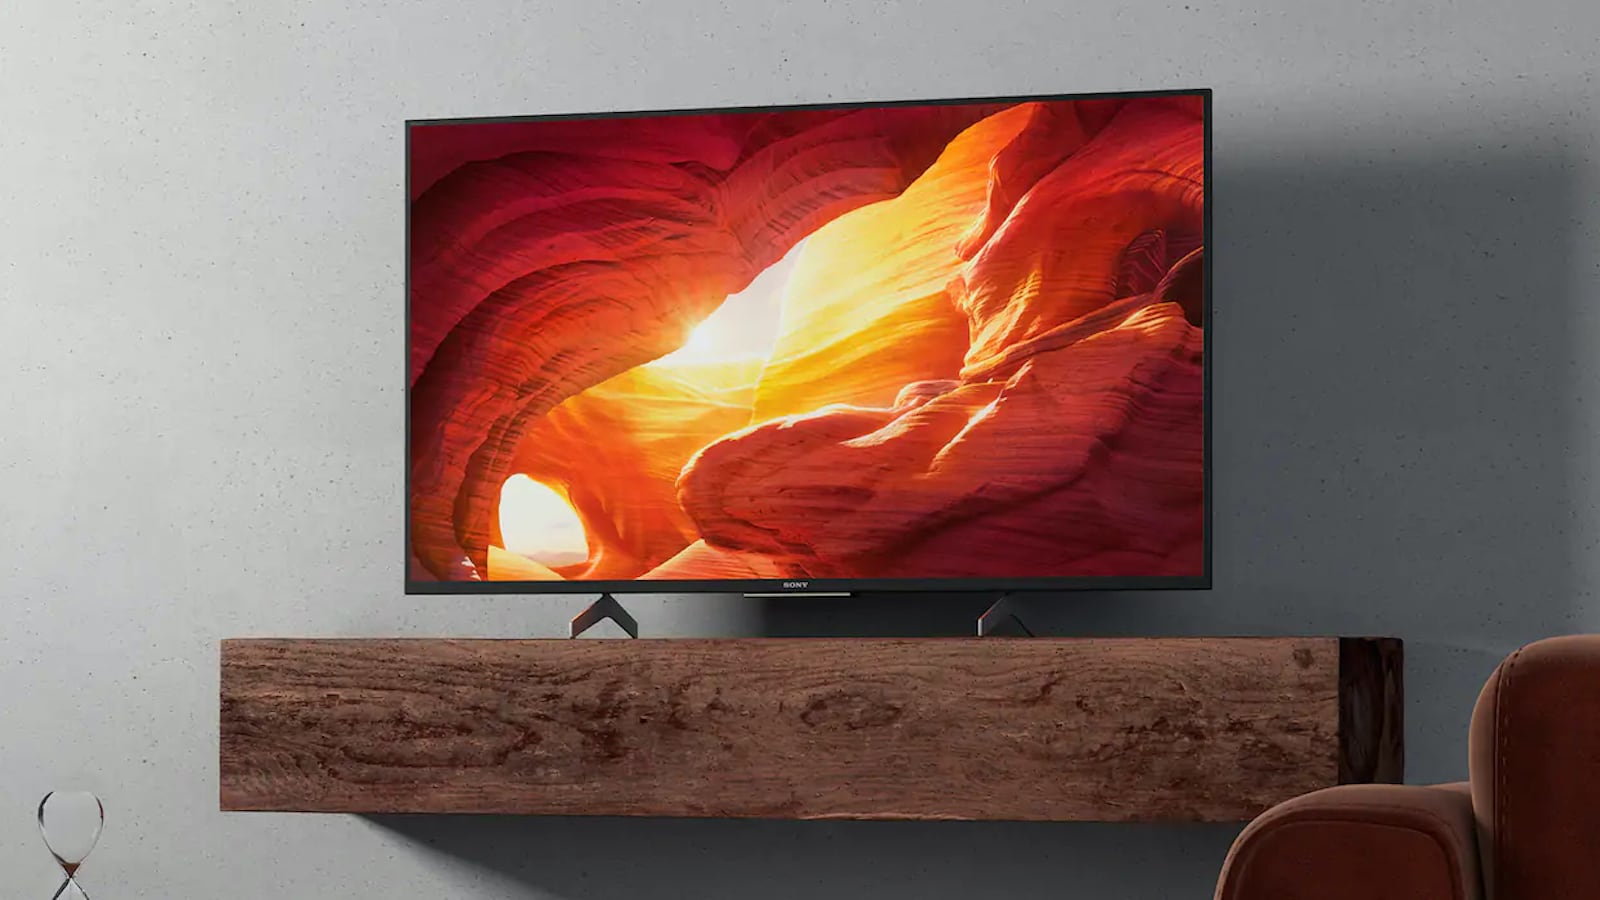 Sony XH85 4K TV